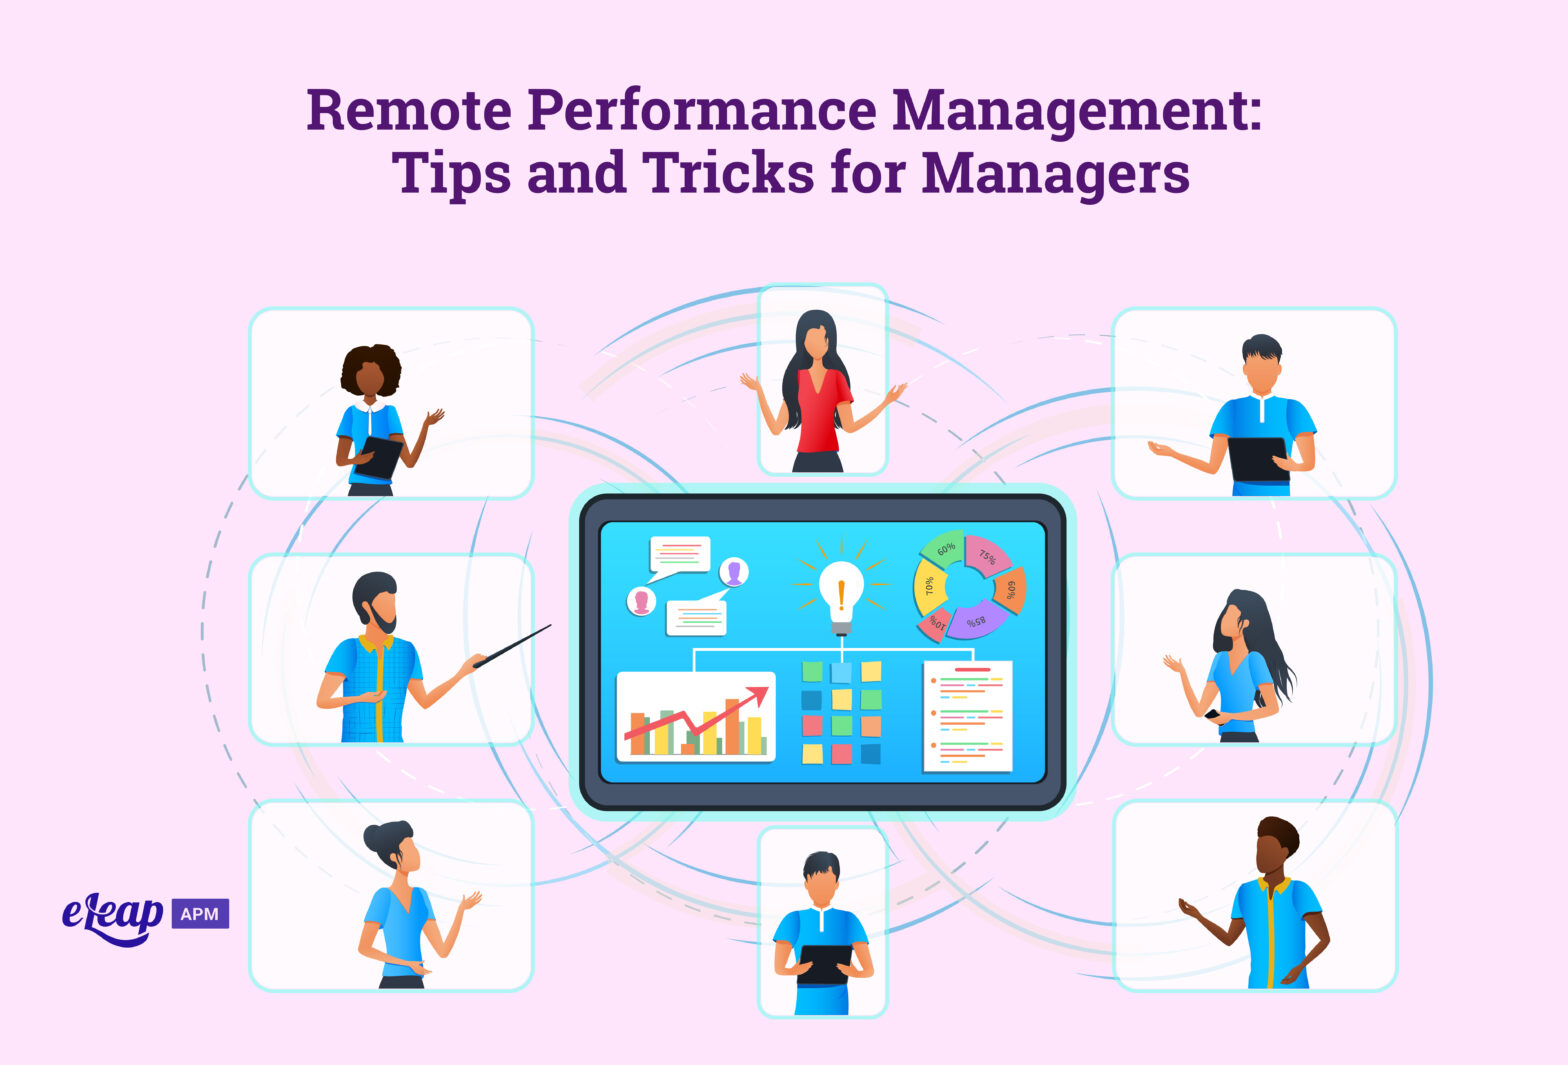 Remote Performance Management: Tips and Tricks for Managers